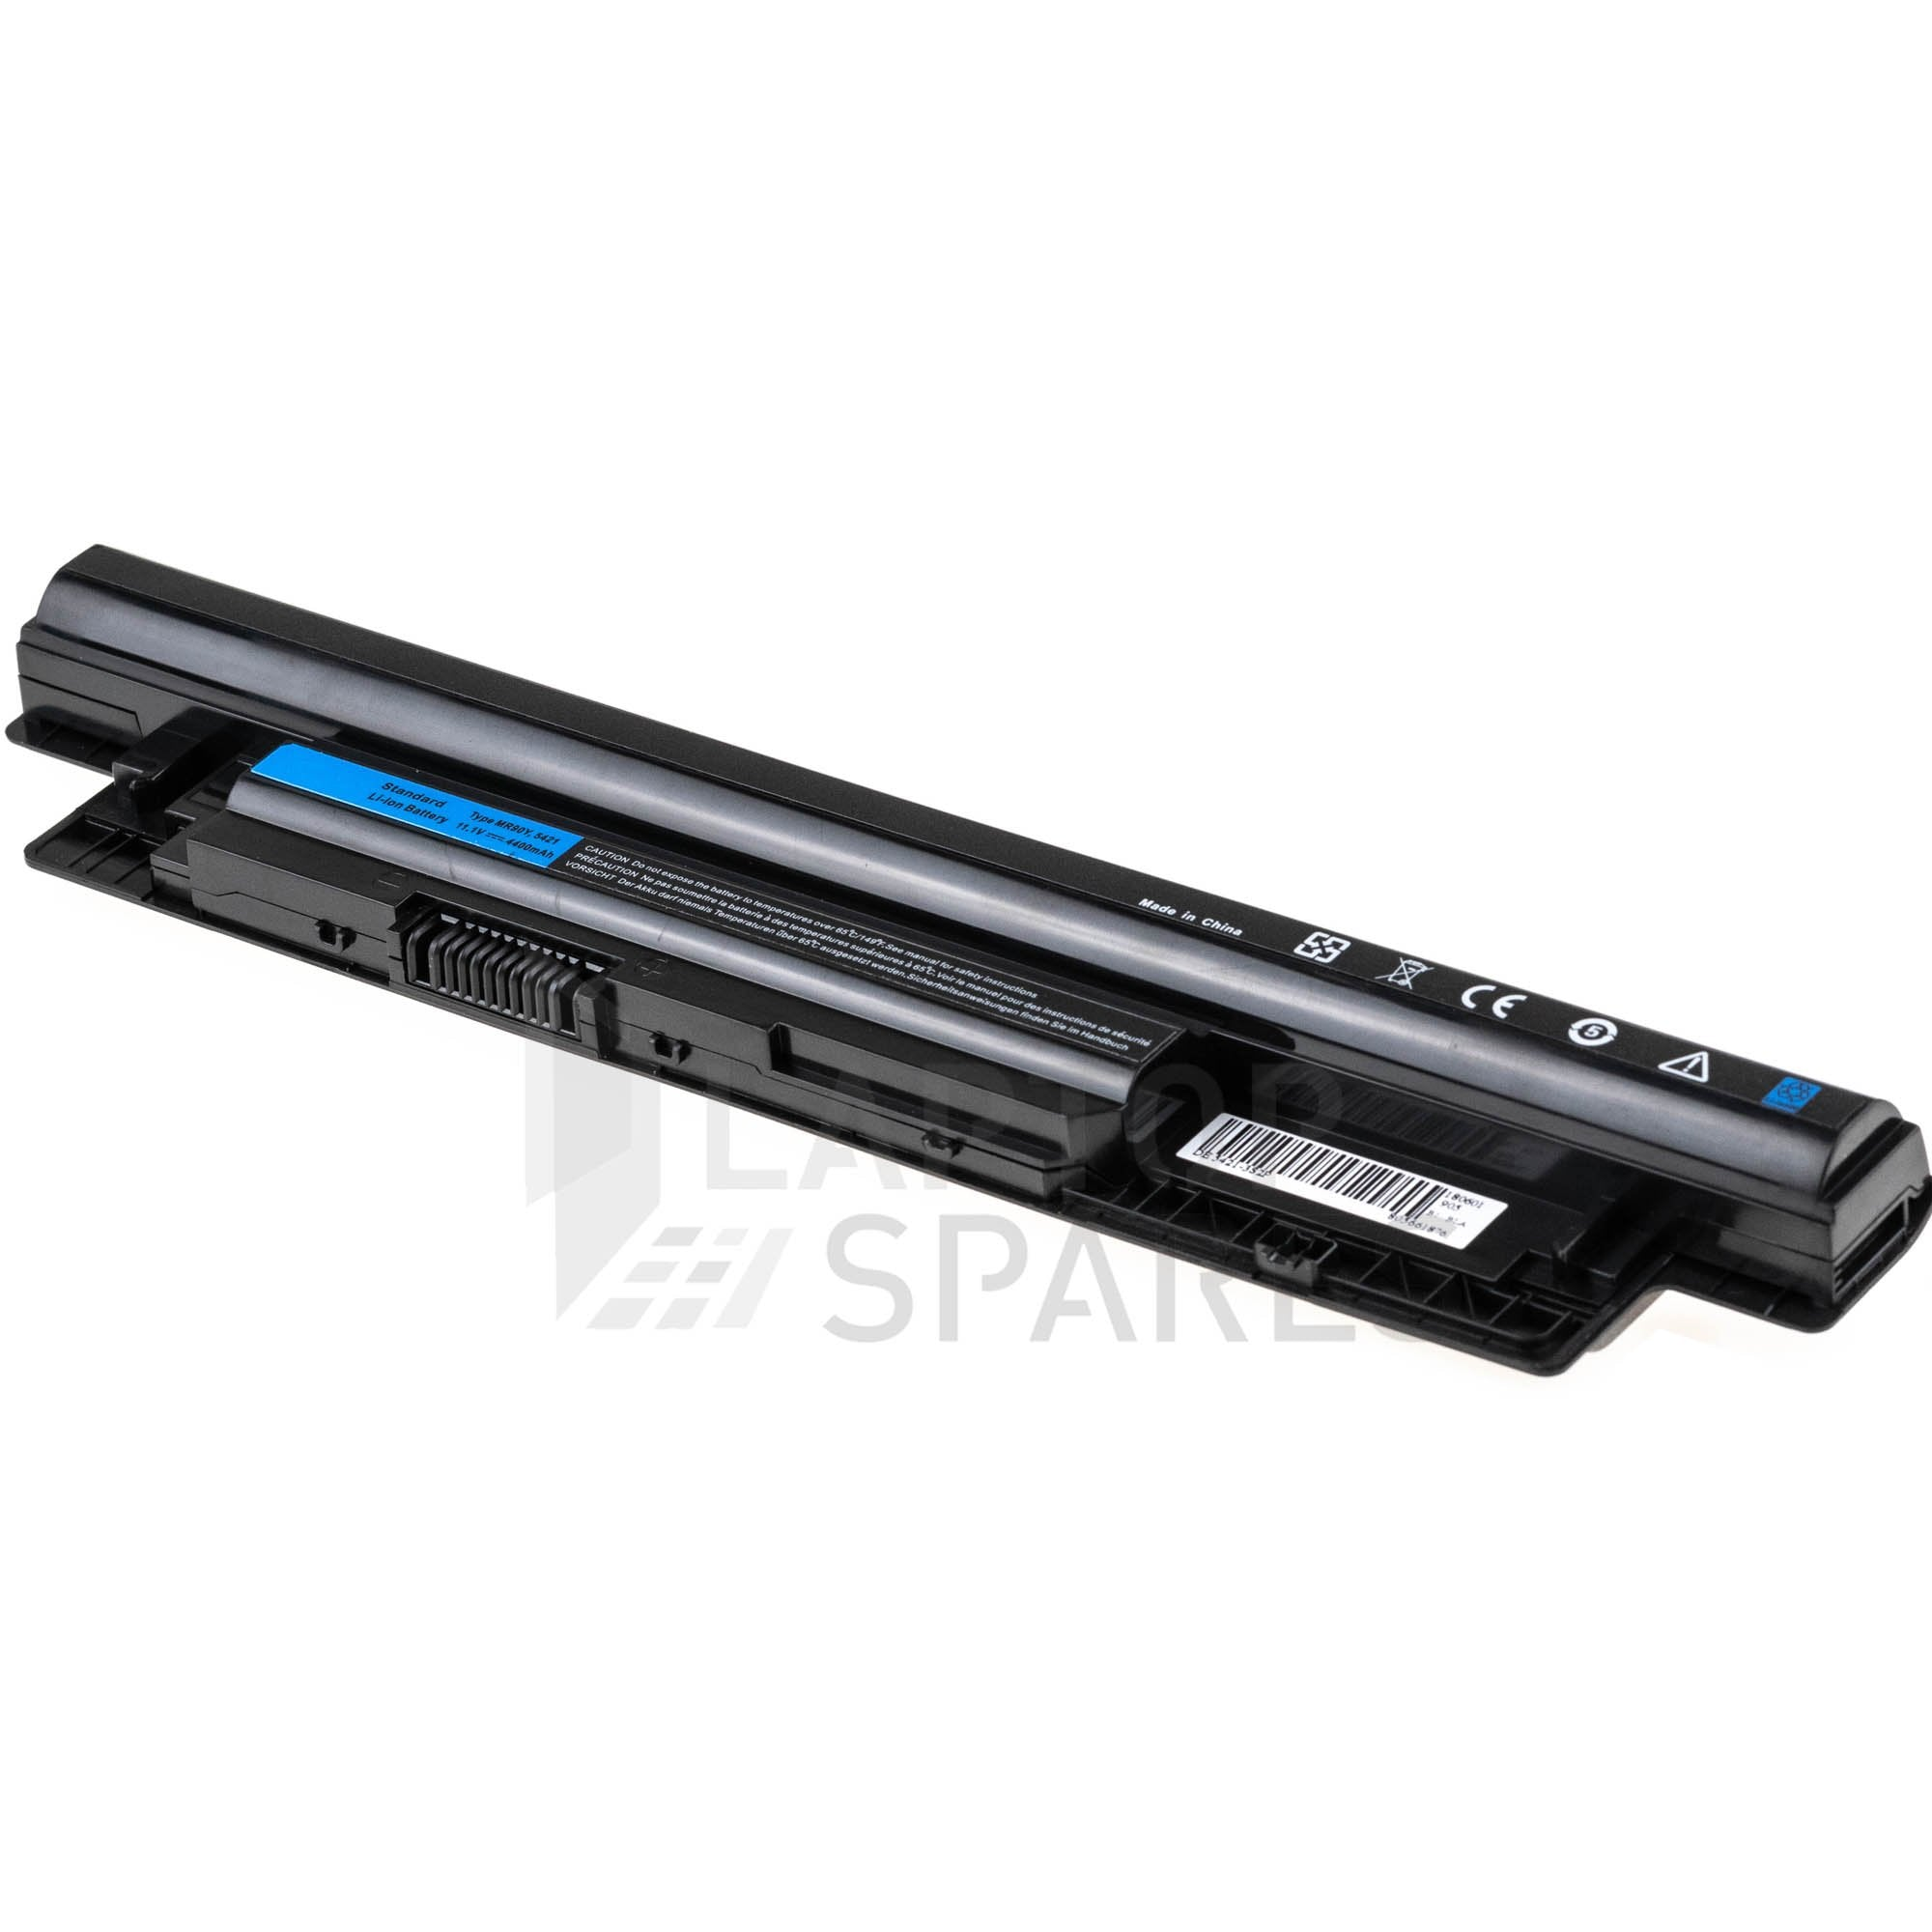 Dell Inspiron 15 3541 3542 3543 4400mAh 6 Cell Battery